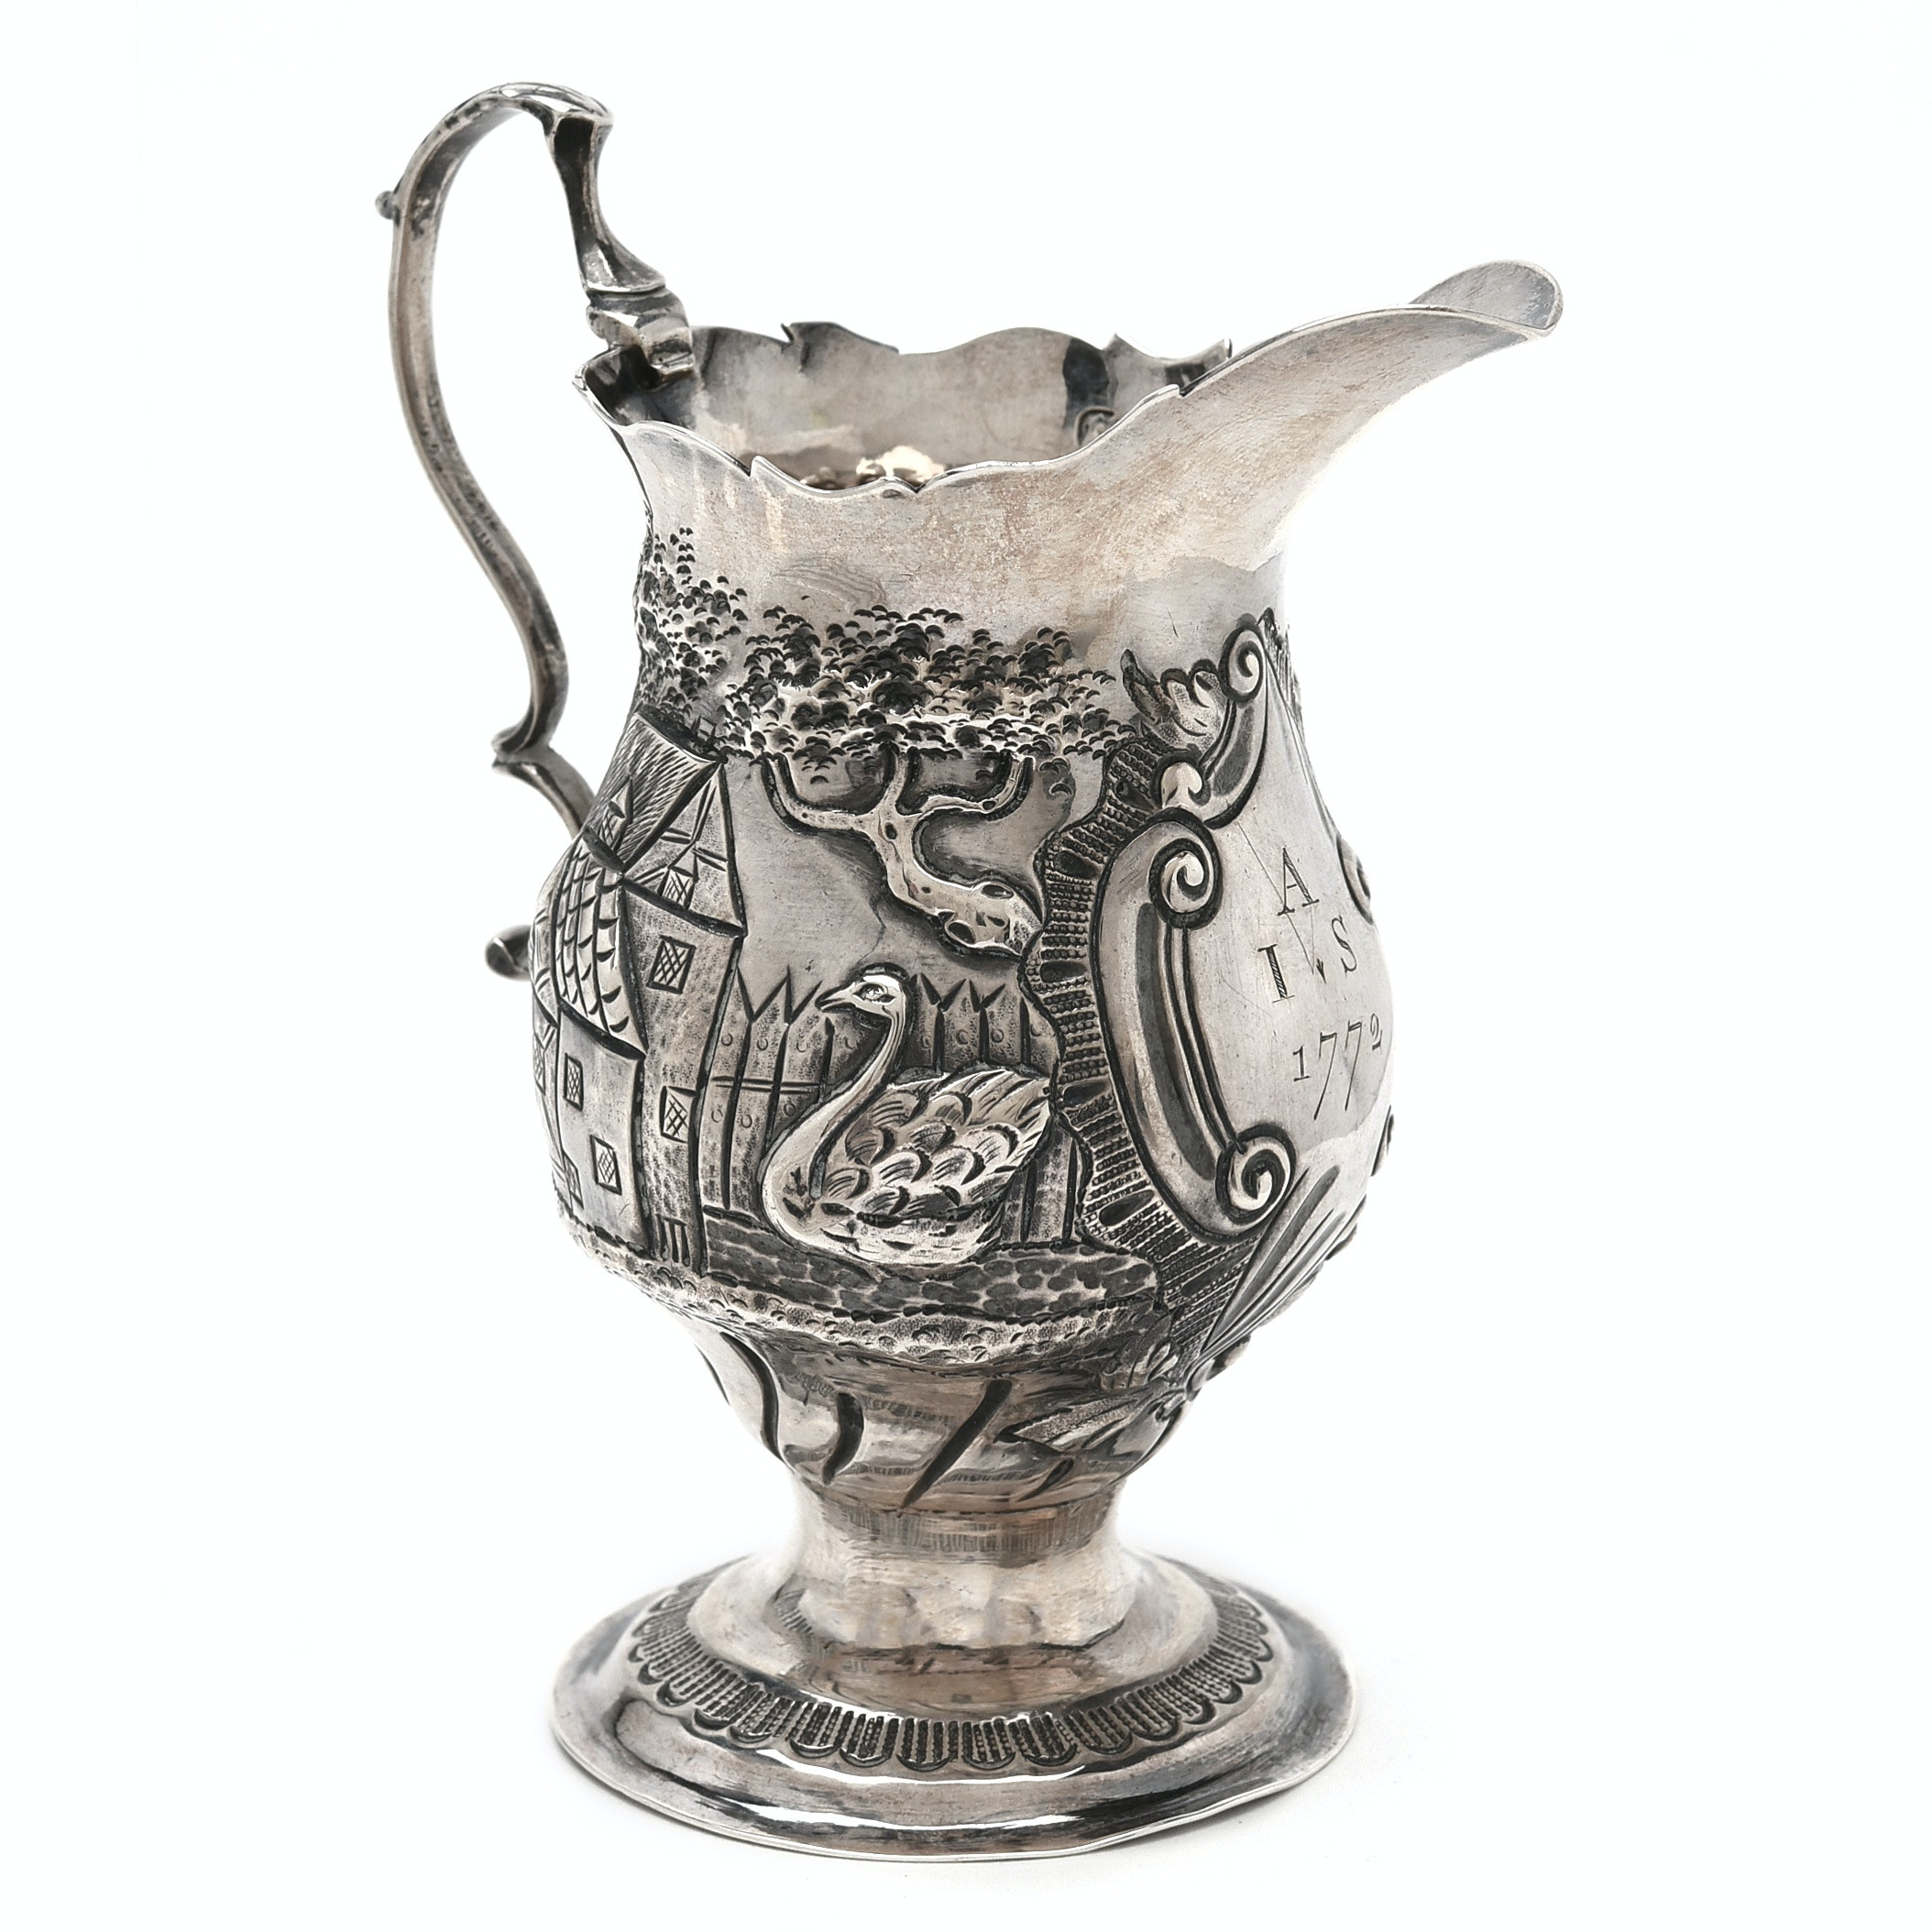 George III Sterling Silver Cream Jug by Nathaniel Appleton and Ann Smith, 1772